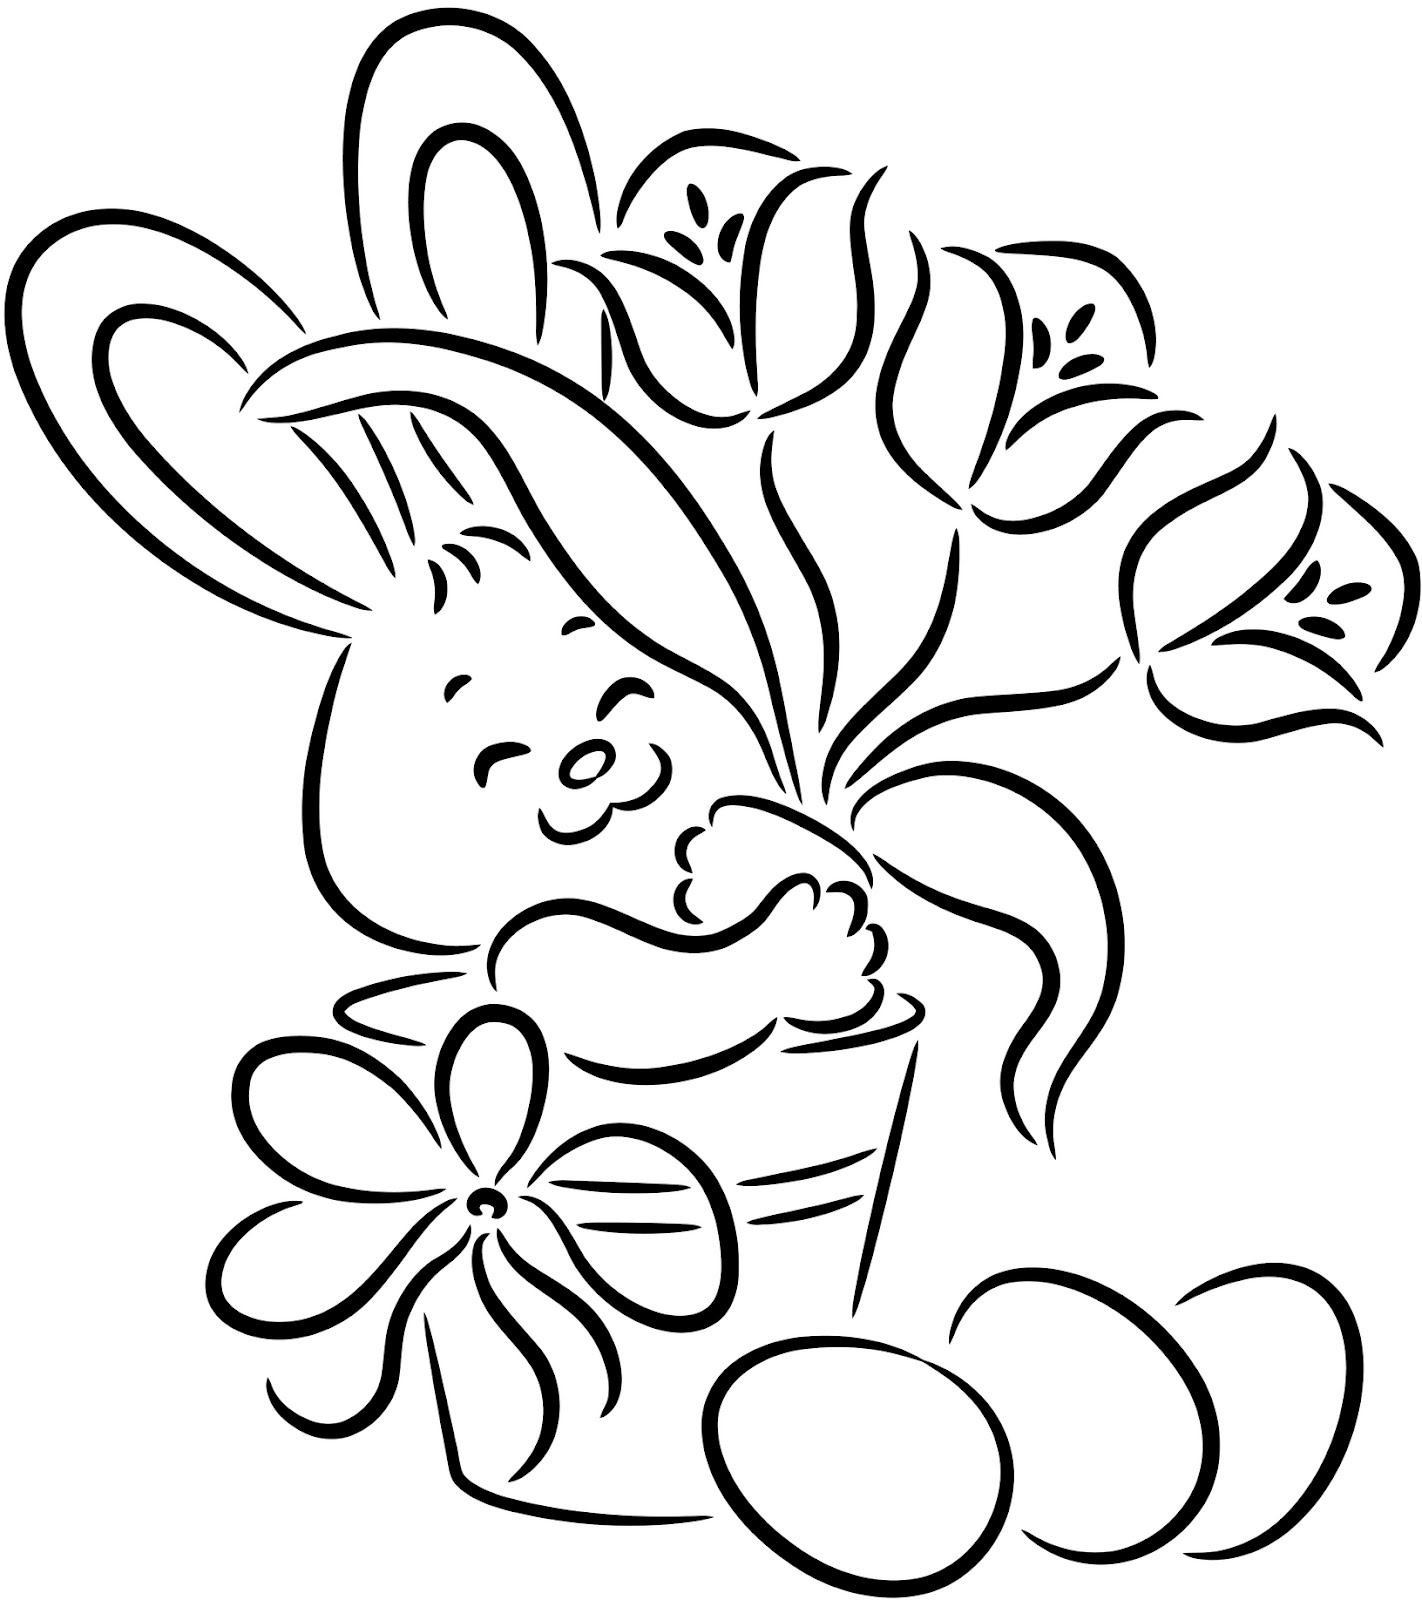 bunny coloring book 16 easter bunny coloring pages coloring book bunny